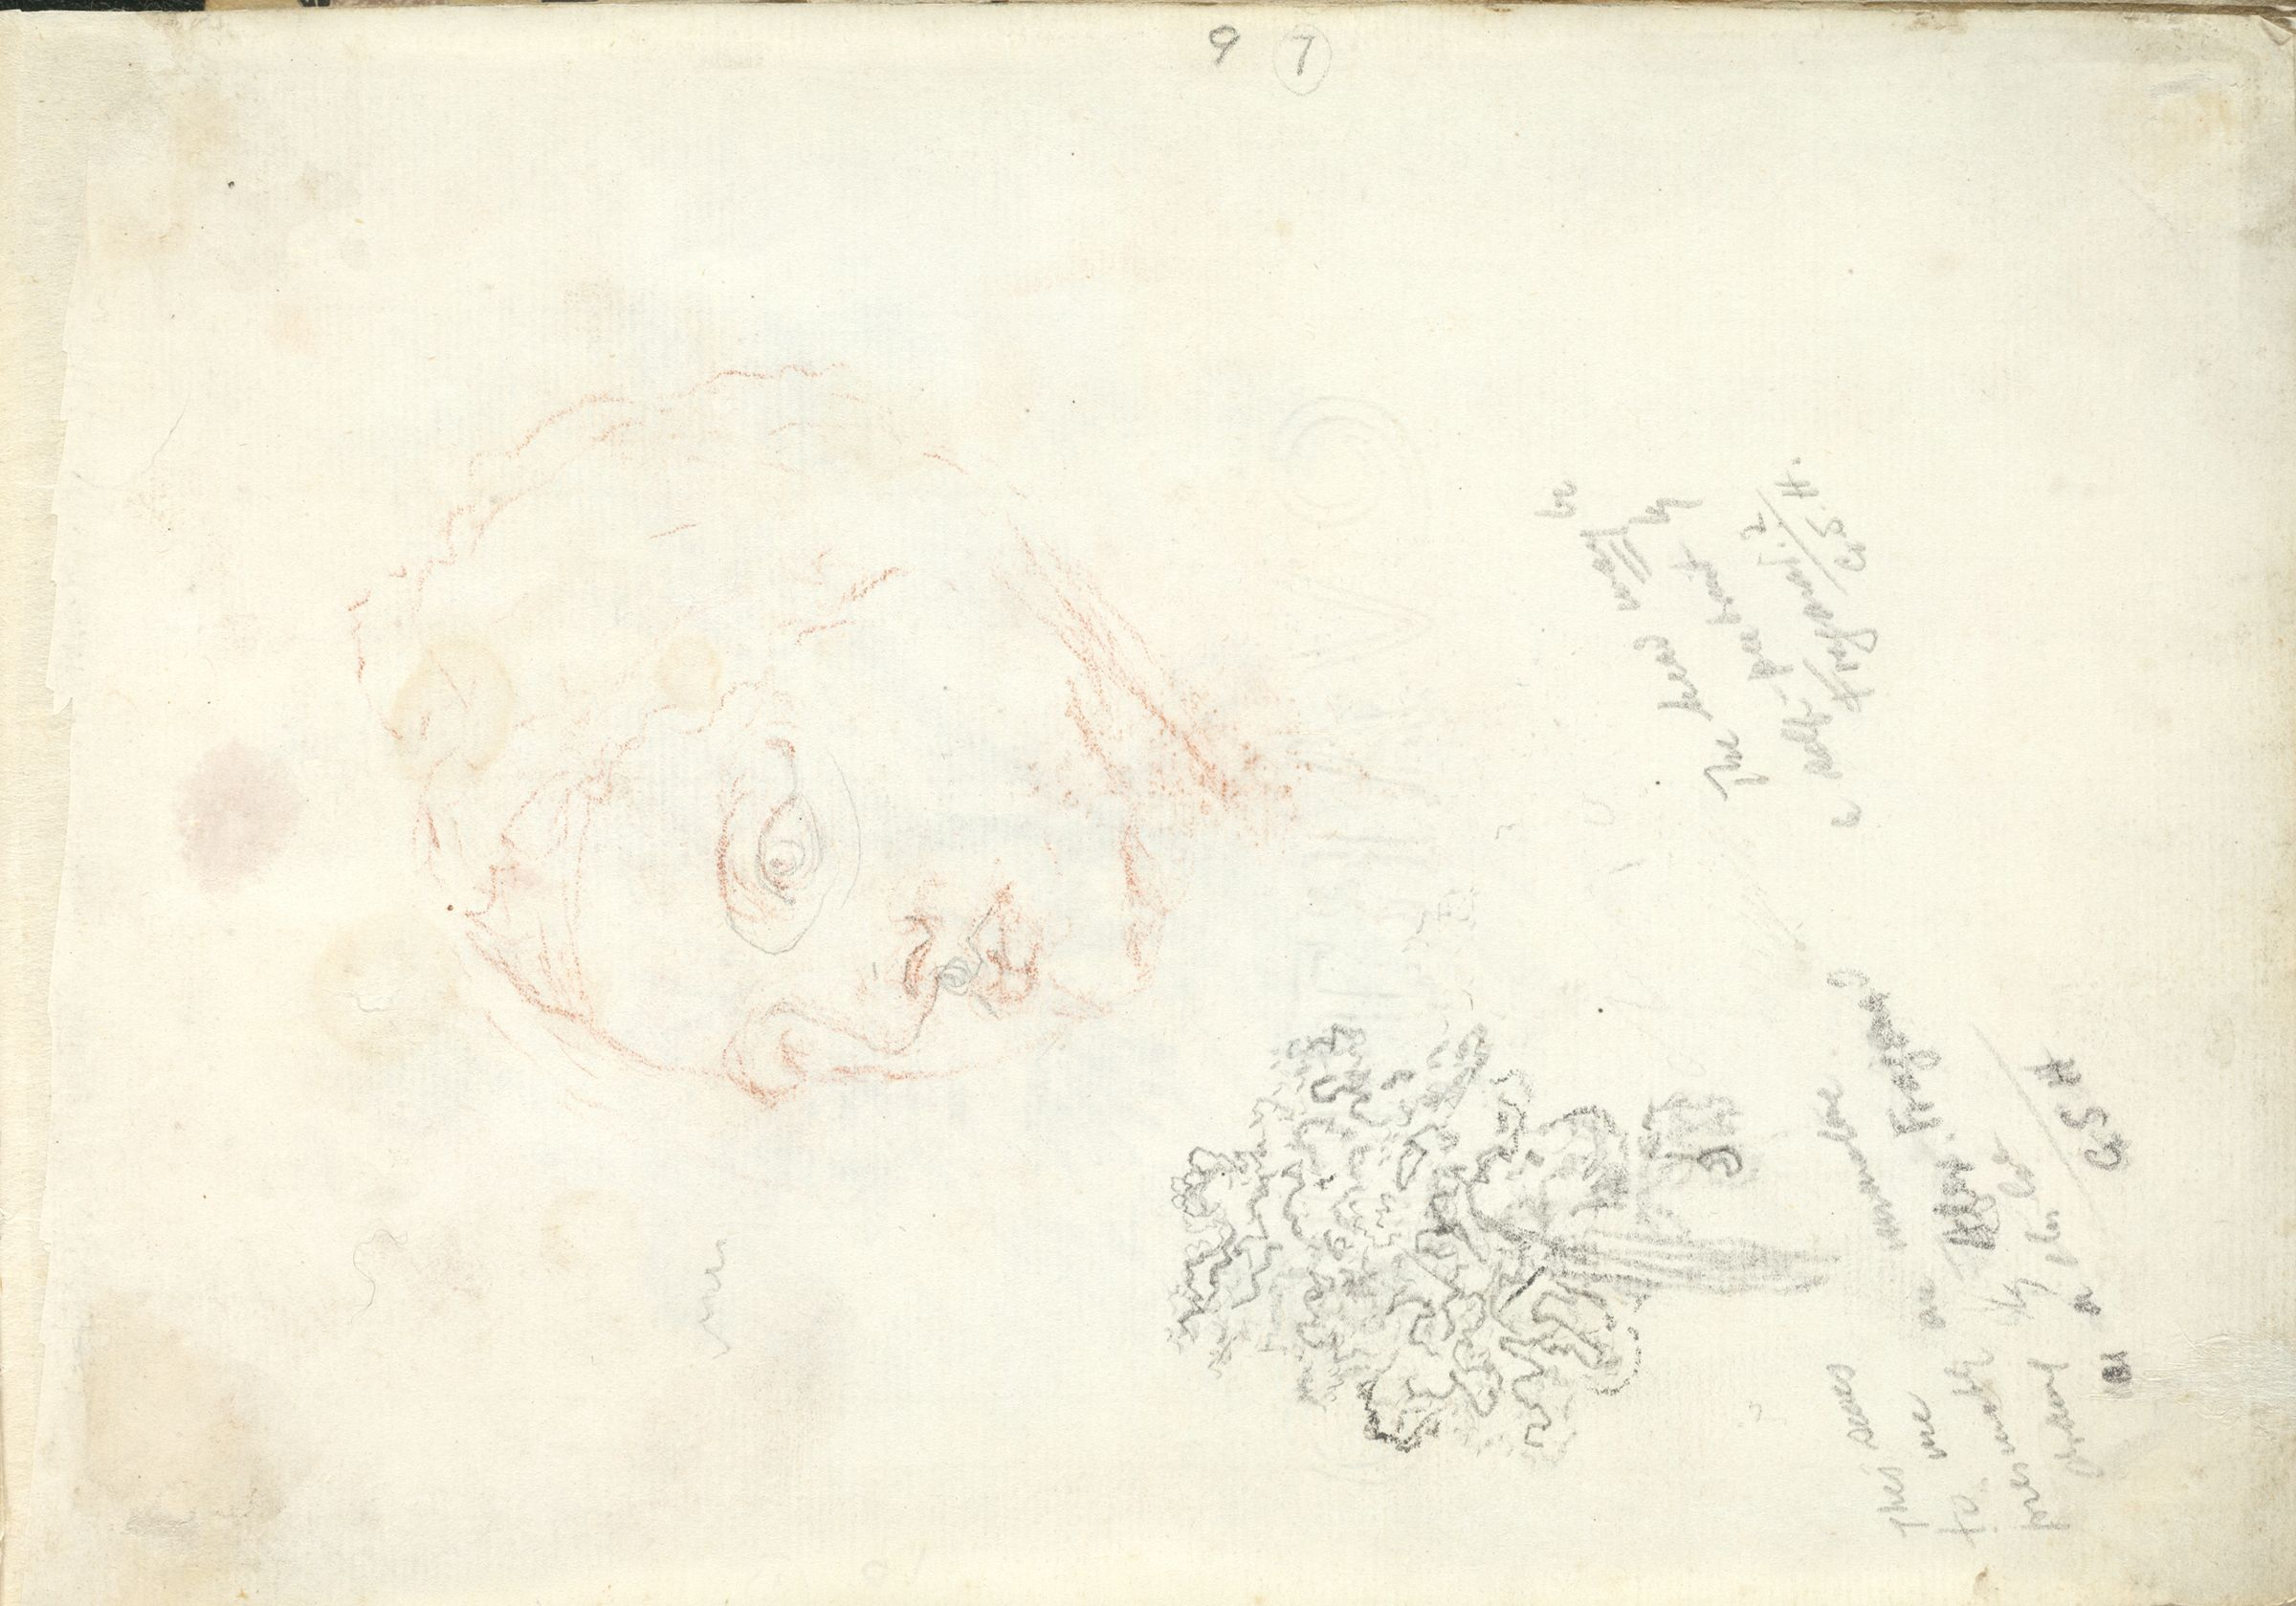 Head Of A Man And A Tree; Verso: Blank Page